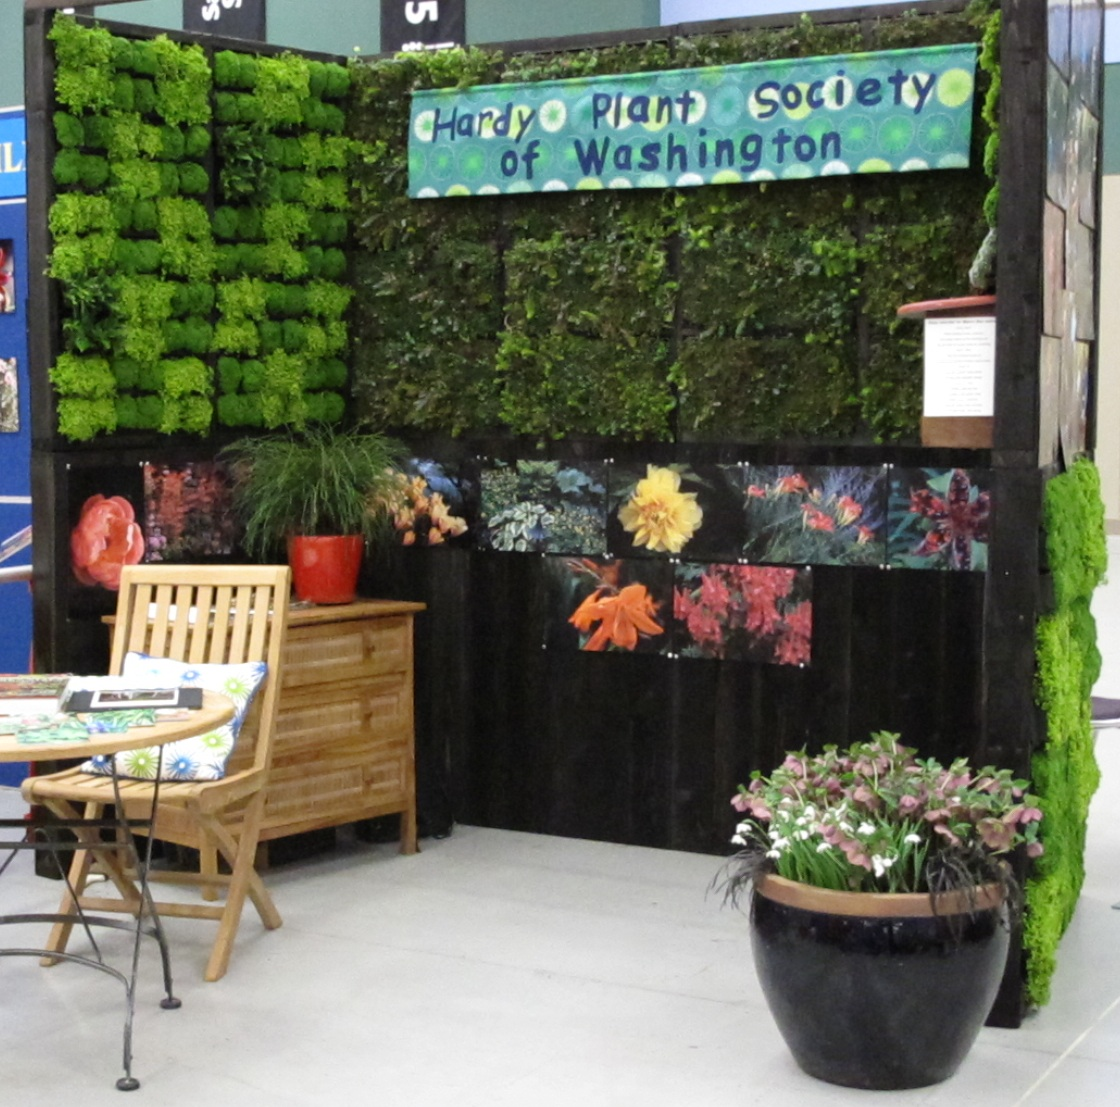 Overall image of booth